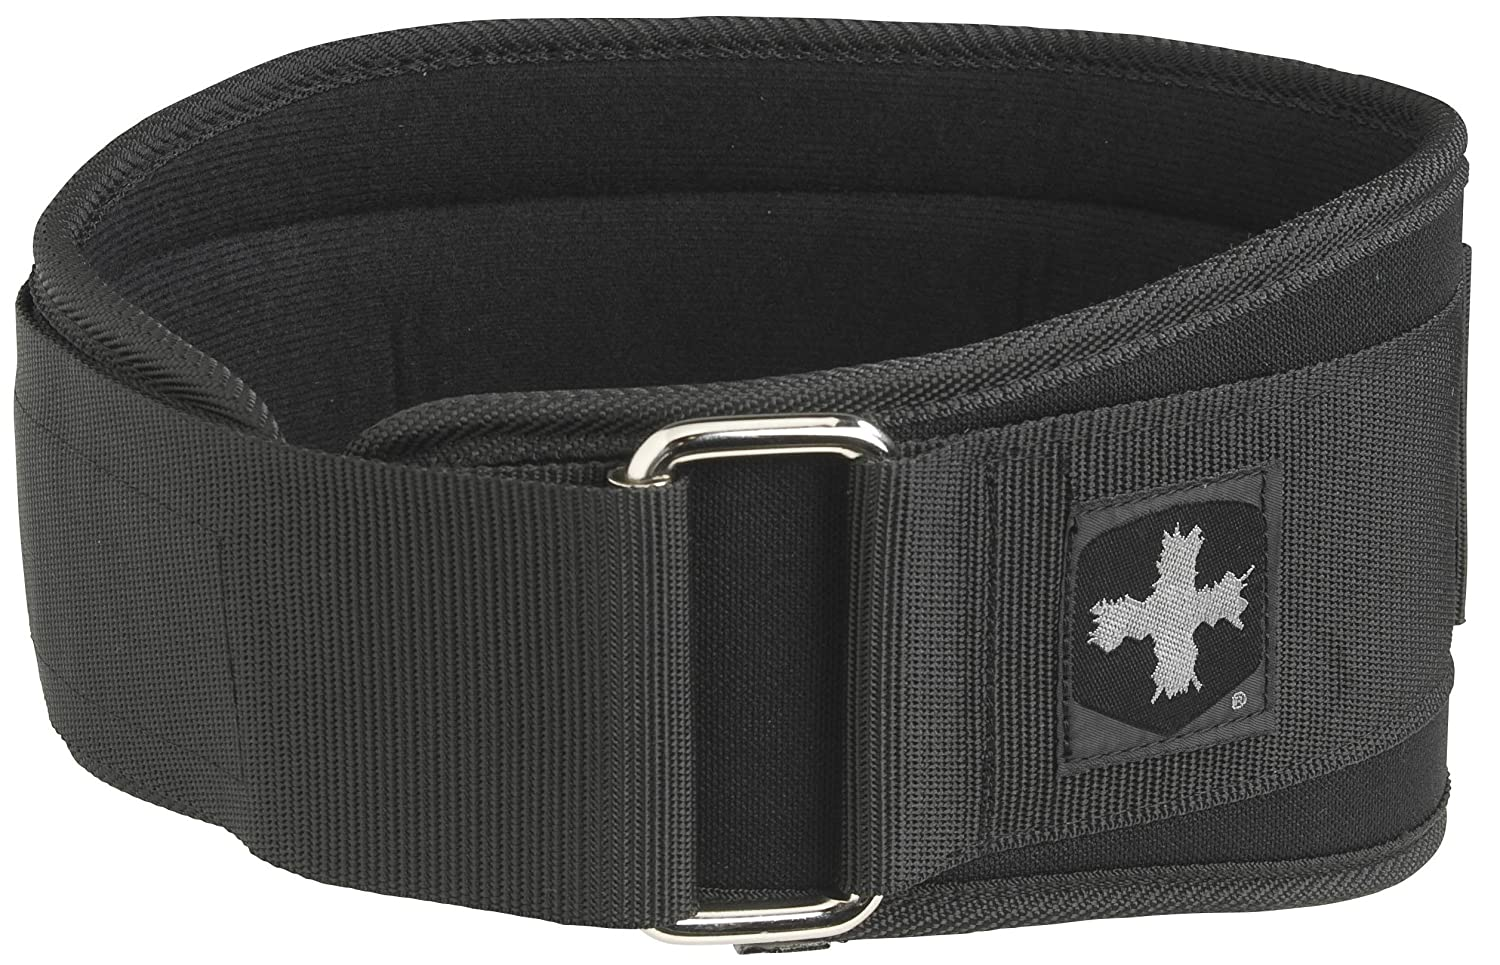 #3. Harbinger Weightlifting Belt